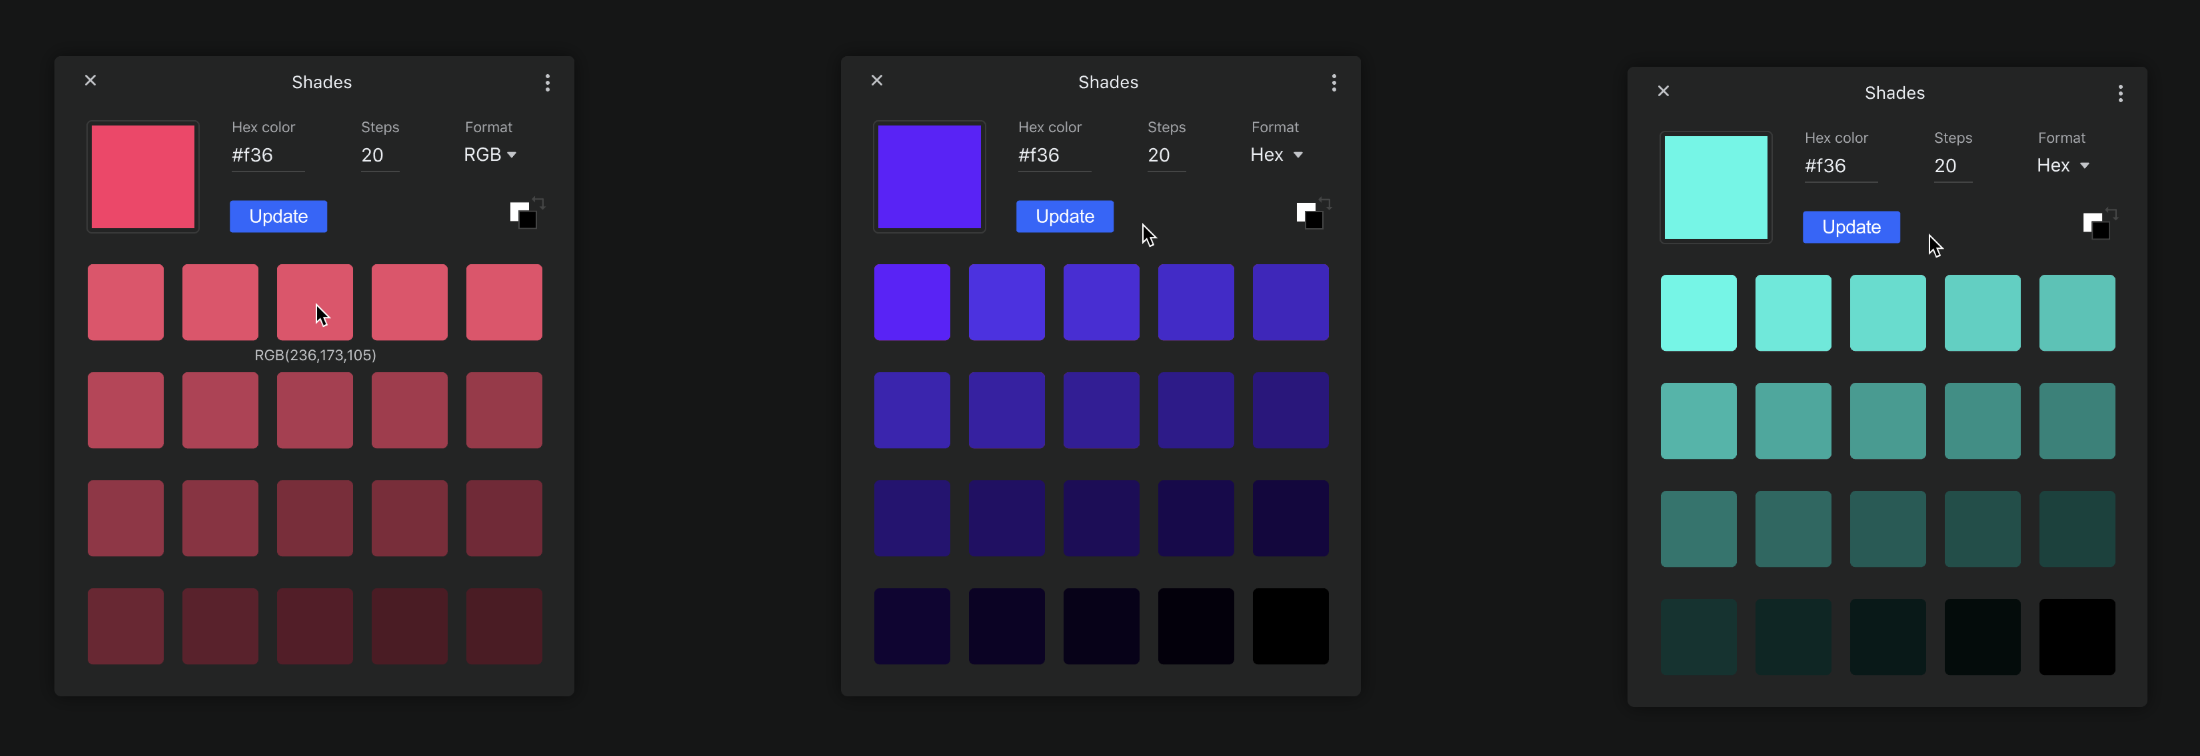 shades-studio-app-hero.png